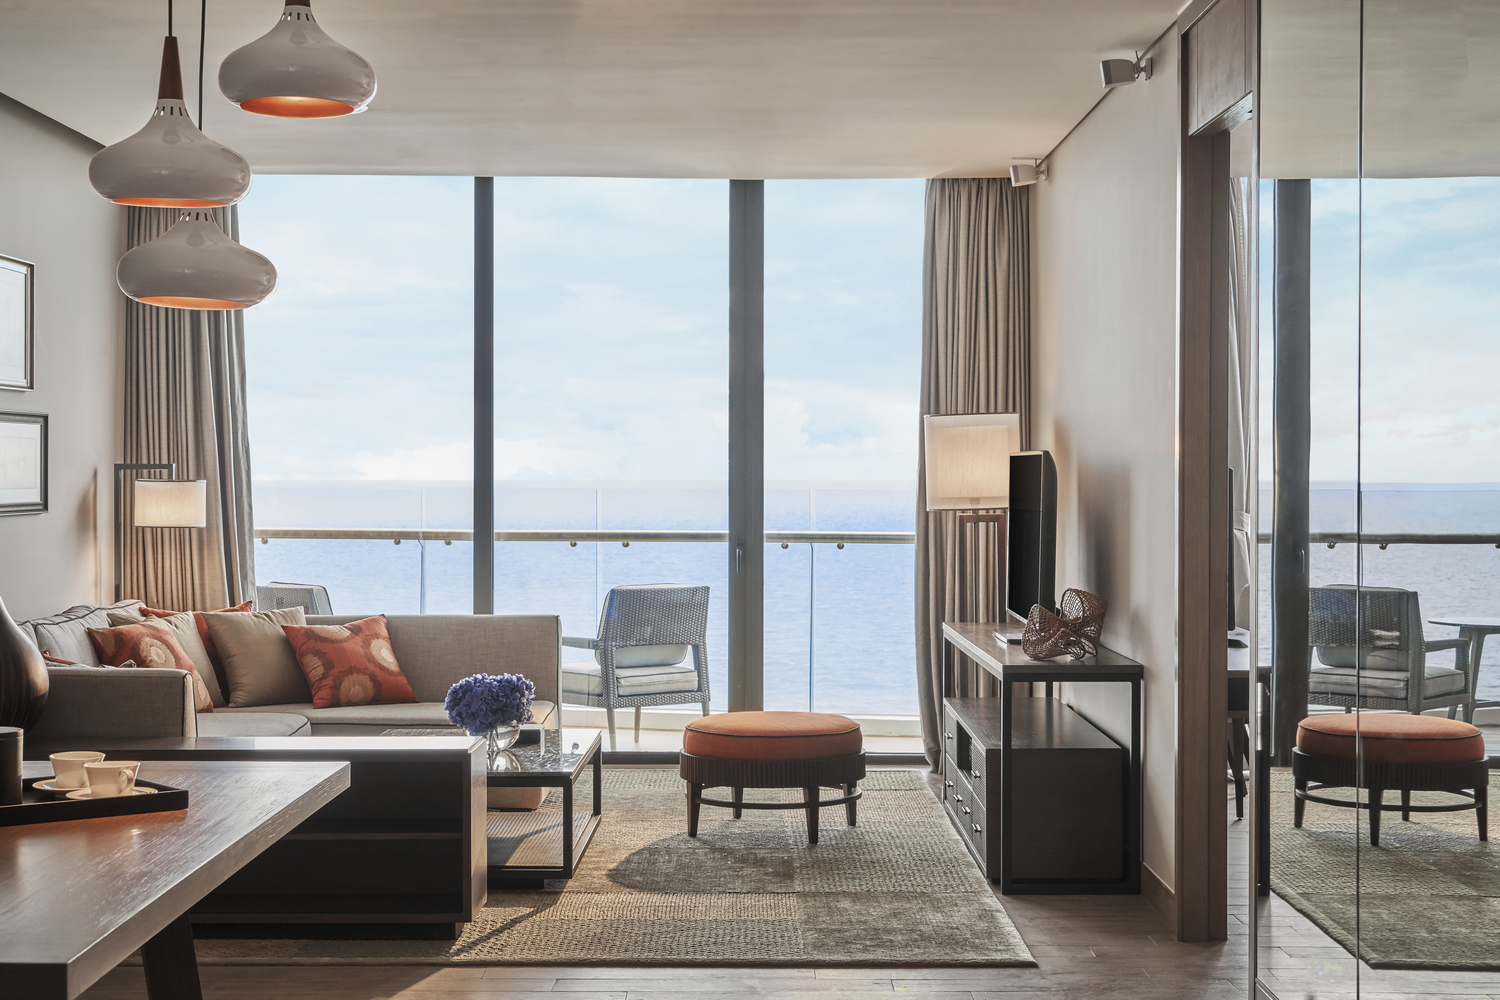 Wanderlust Tips Magazine | Sky Tower revealed at InterContinental Phu Quoc Long Beach Resort